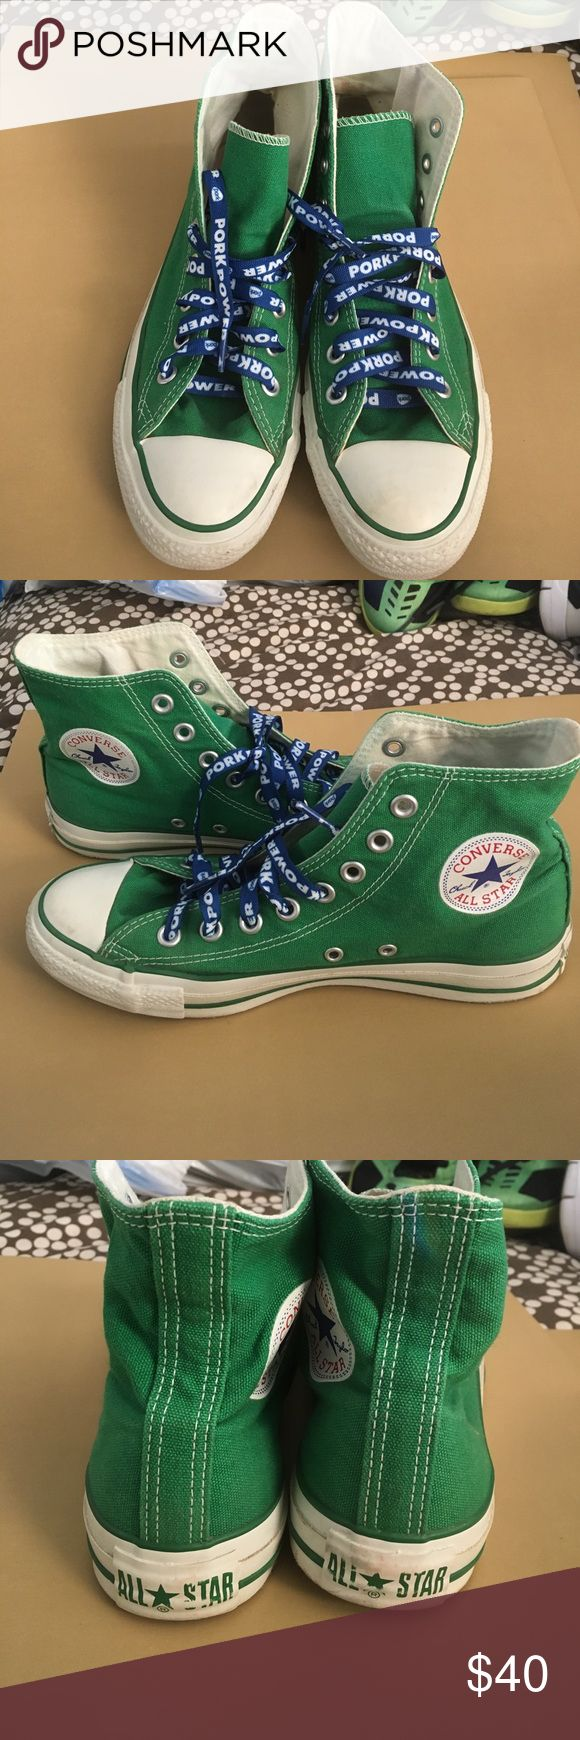 Converse AllStar Chuck Taylor Green Men's 7 WOs 9 Preloved and in excellent shape 💥No Box💥 Converse All Star Shoes Sneakers